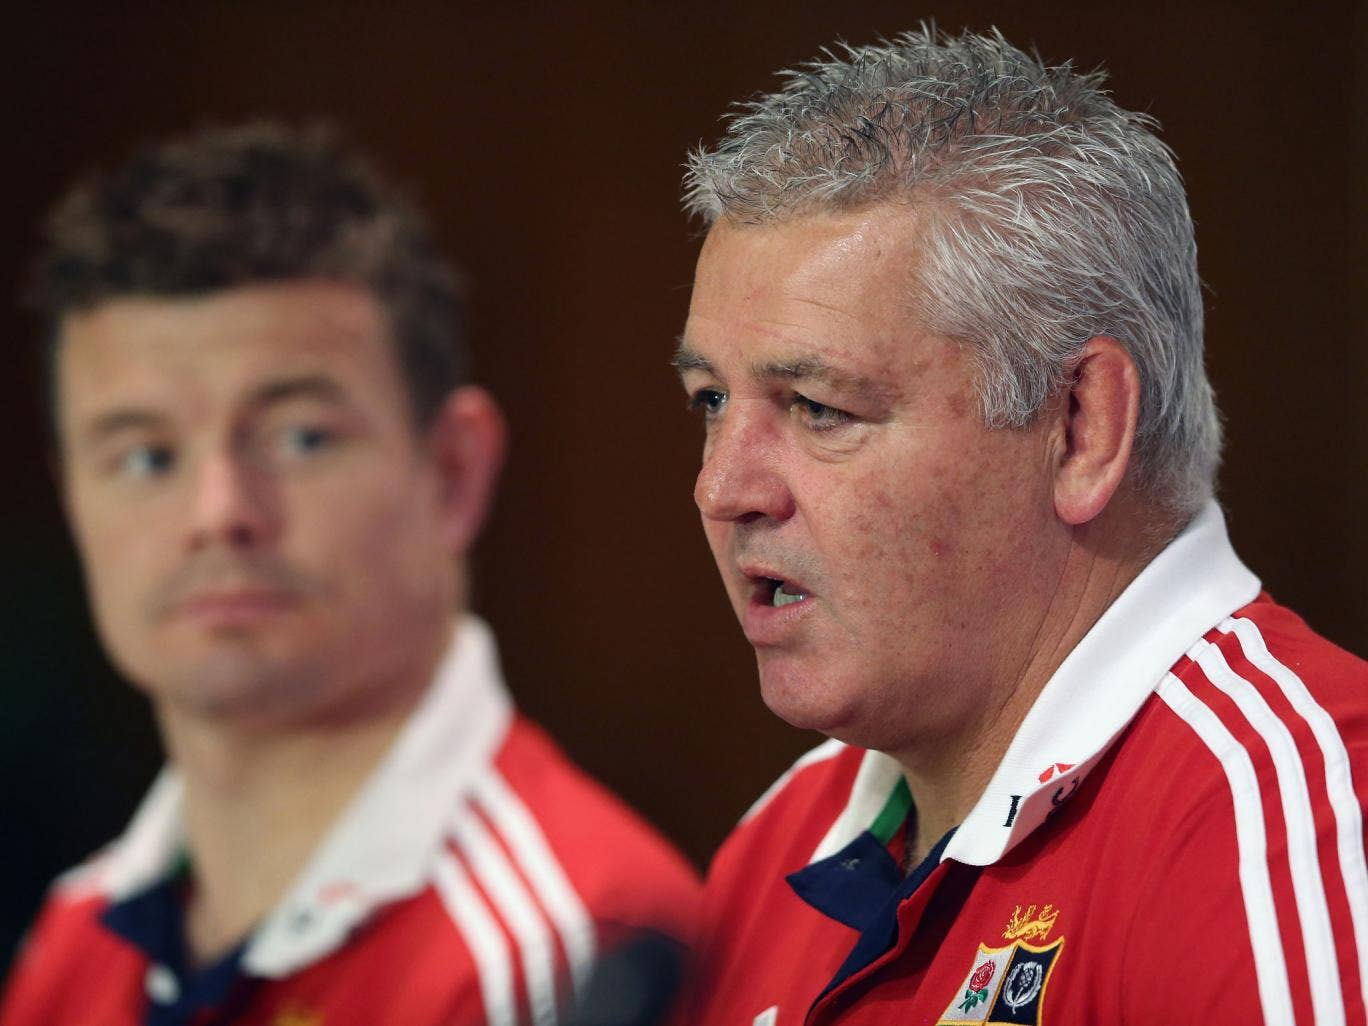 Warren Gatland has admitted that his decision to drop Brian O'Driscoll from the third British and Irish Lions Test will give Ireland v Wales an 'extra twist'